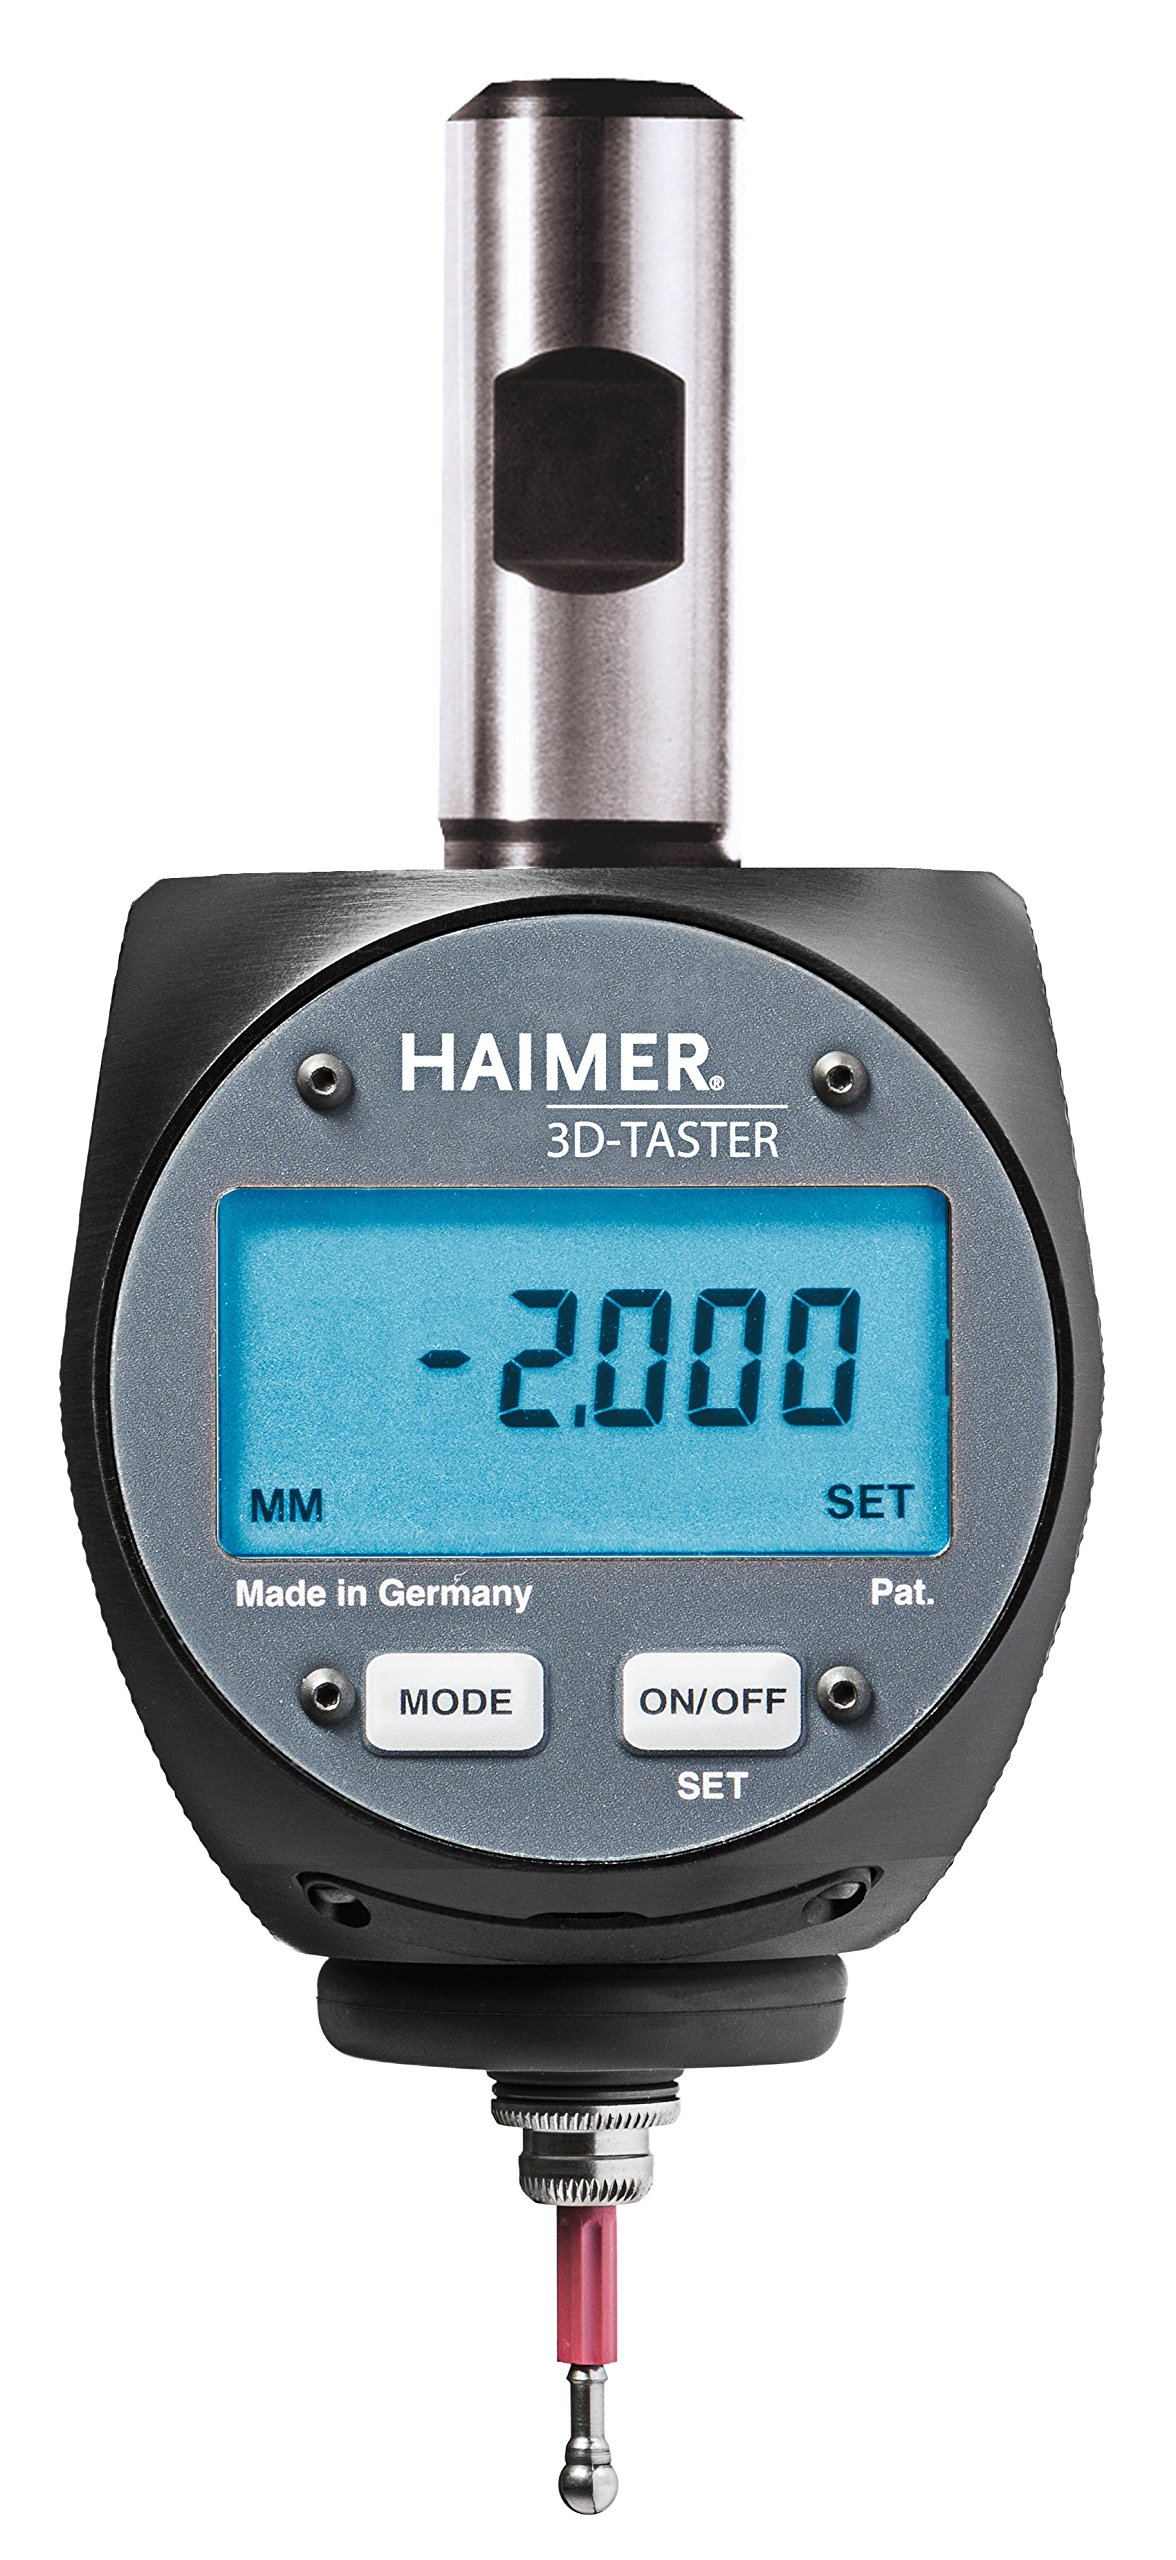 HAIMER Digital 3D Sensor - Inch Version